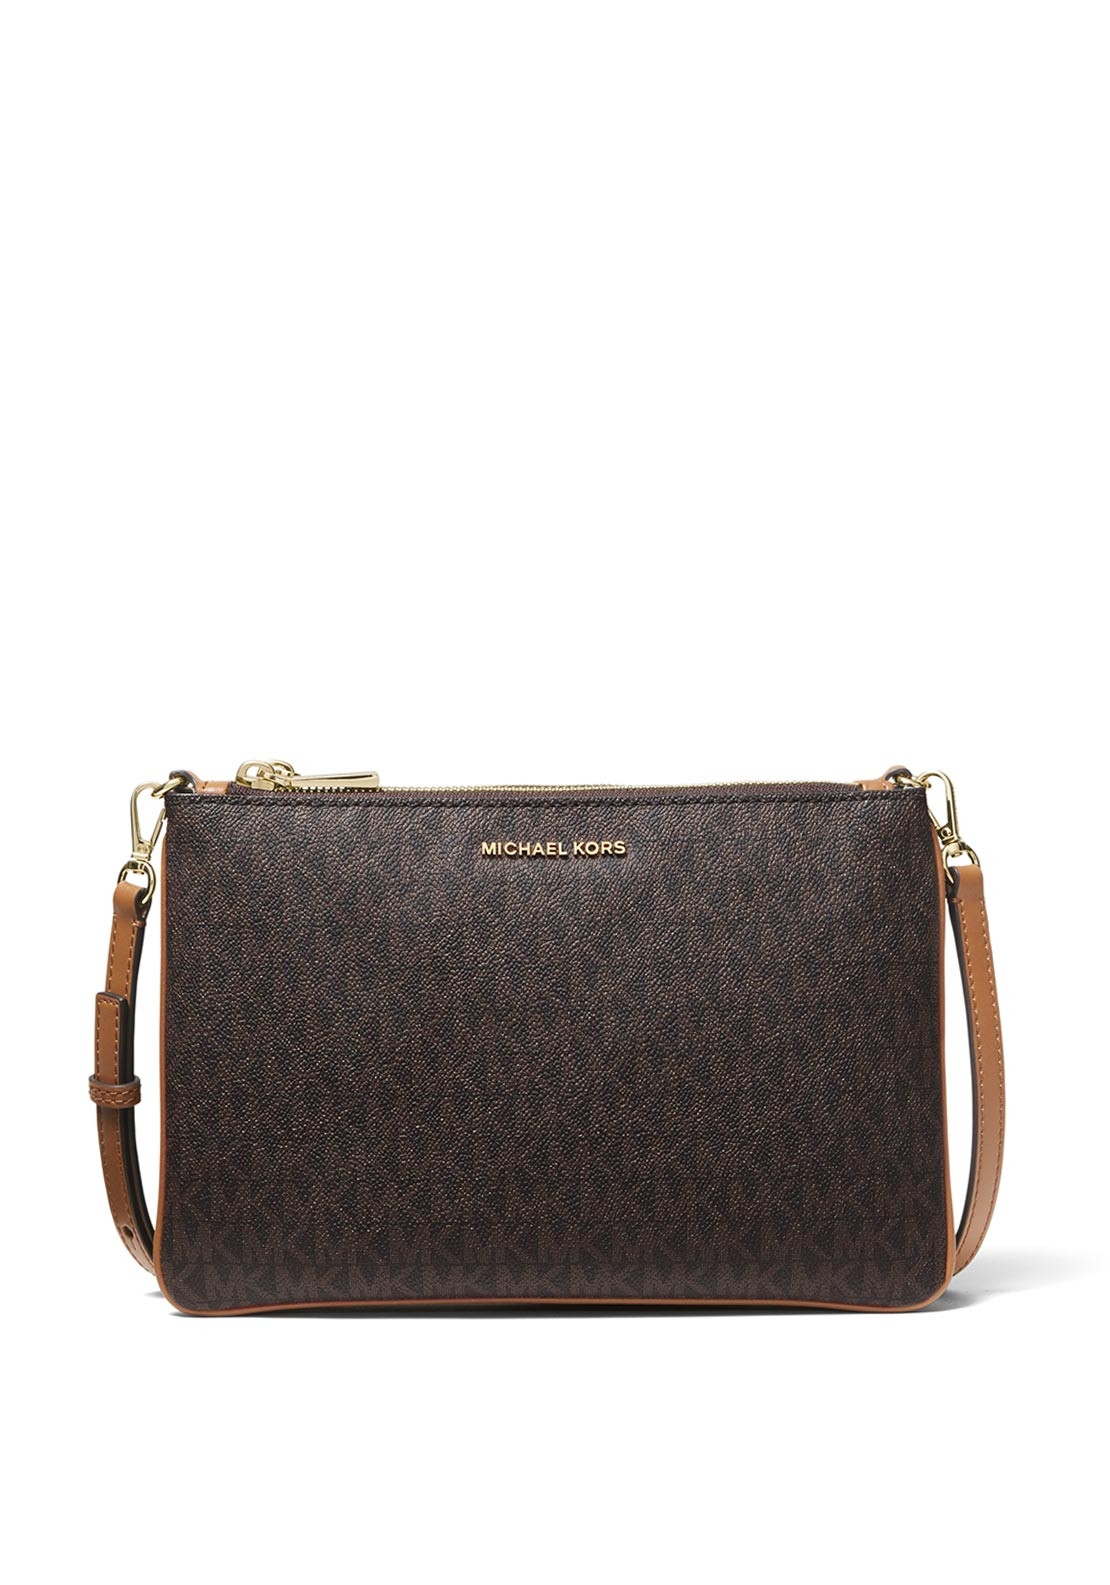 5bd2414d3f8e MICHAEL Michael Kors Leather Crossbody Bag, Brown. Be the first to review  this product